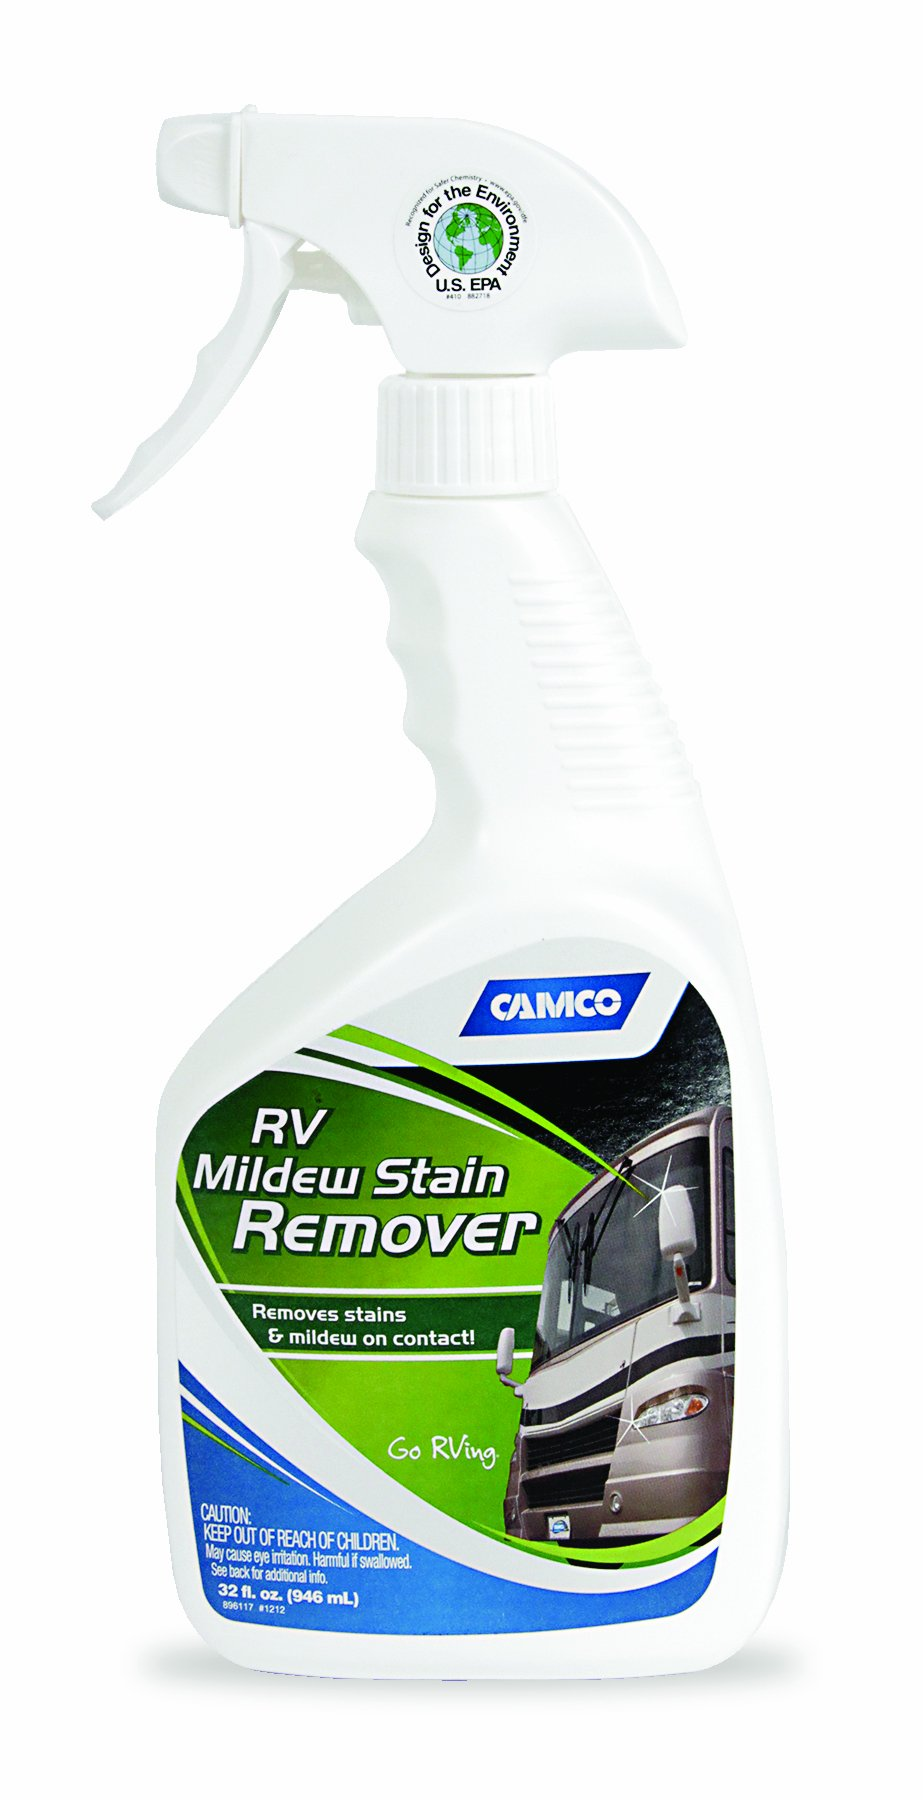 Camco 41092 Mildew Stain Remover - 32 oz by Camco